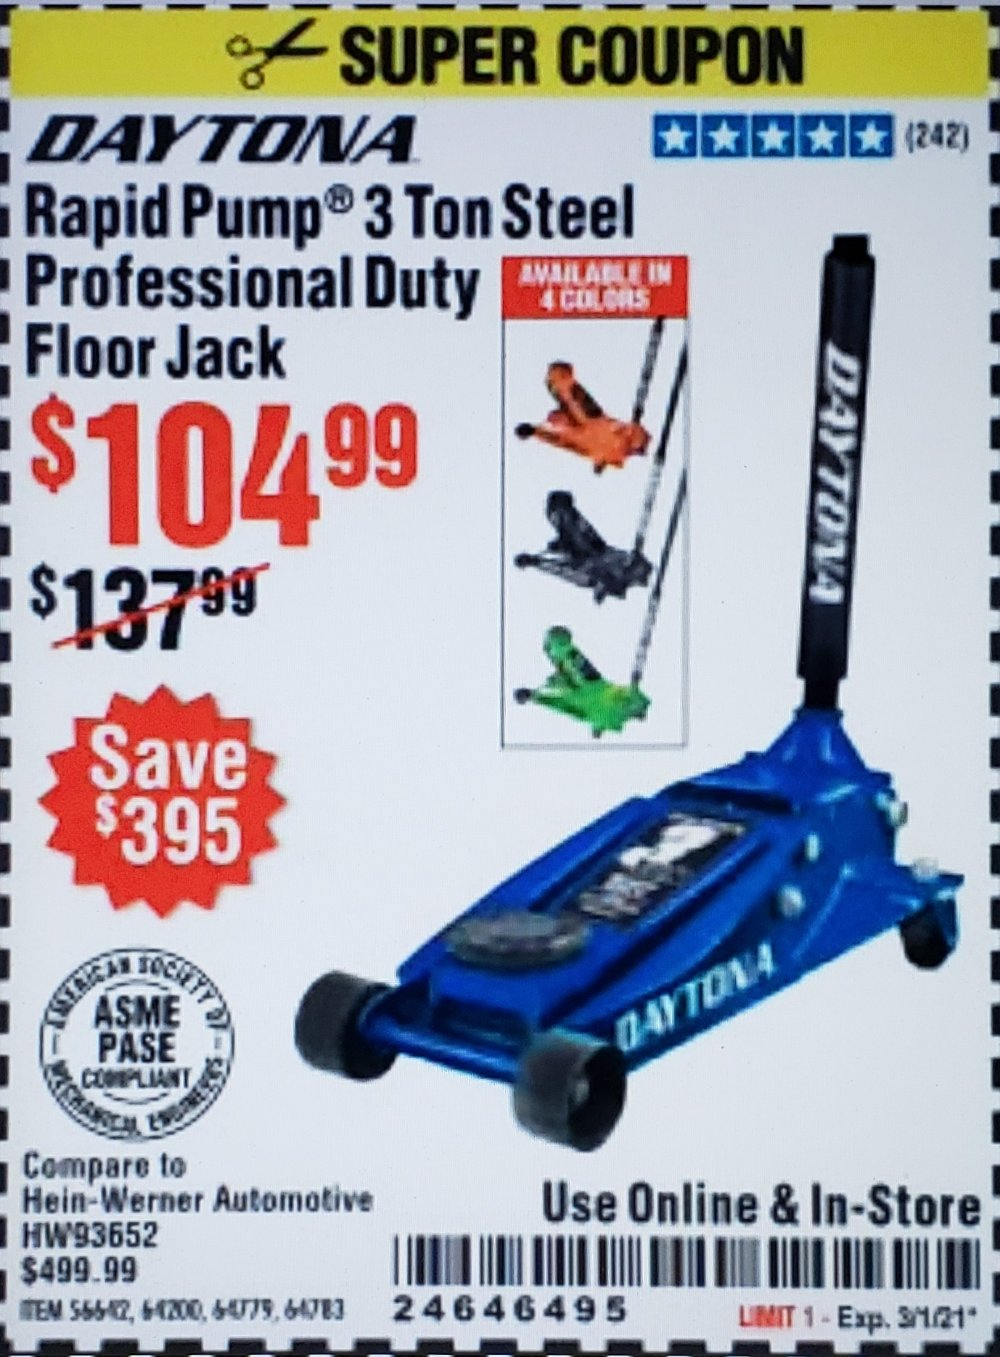 Harbor Freight Coupon, HF Coupons - Daytona 3 Ton Heavy Duty Floor Jack